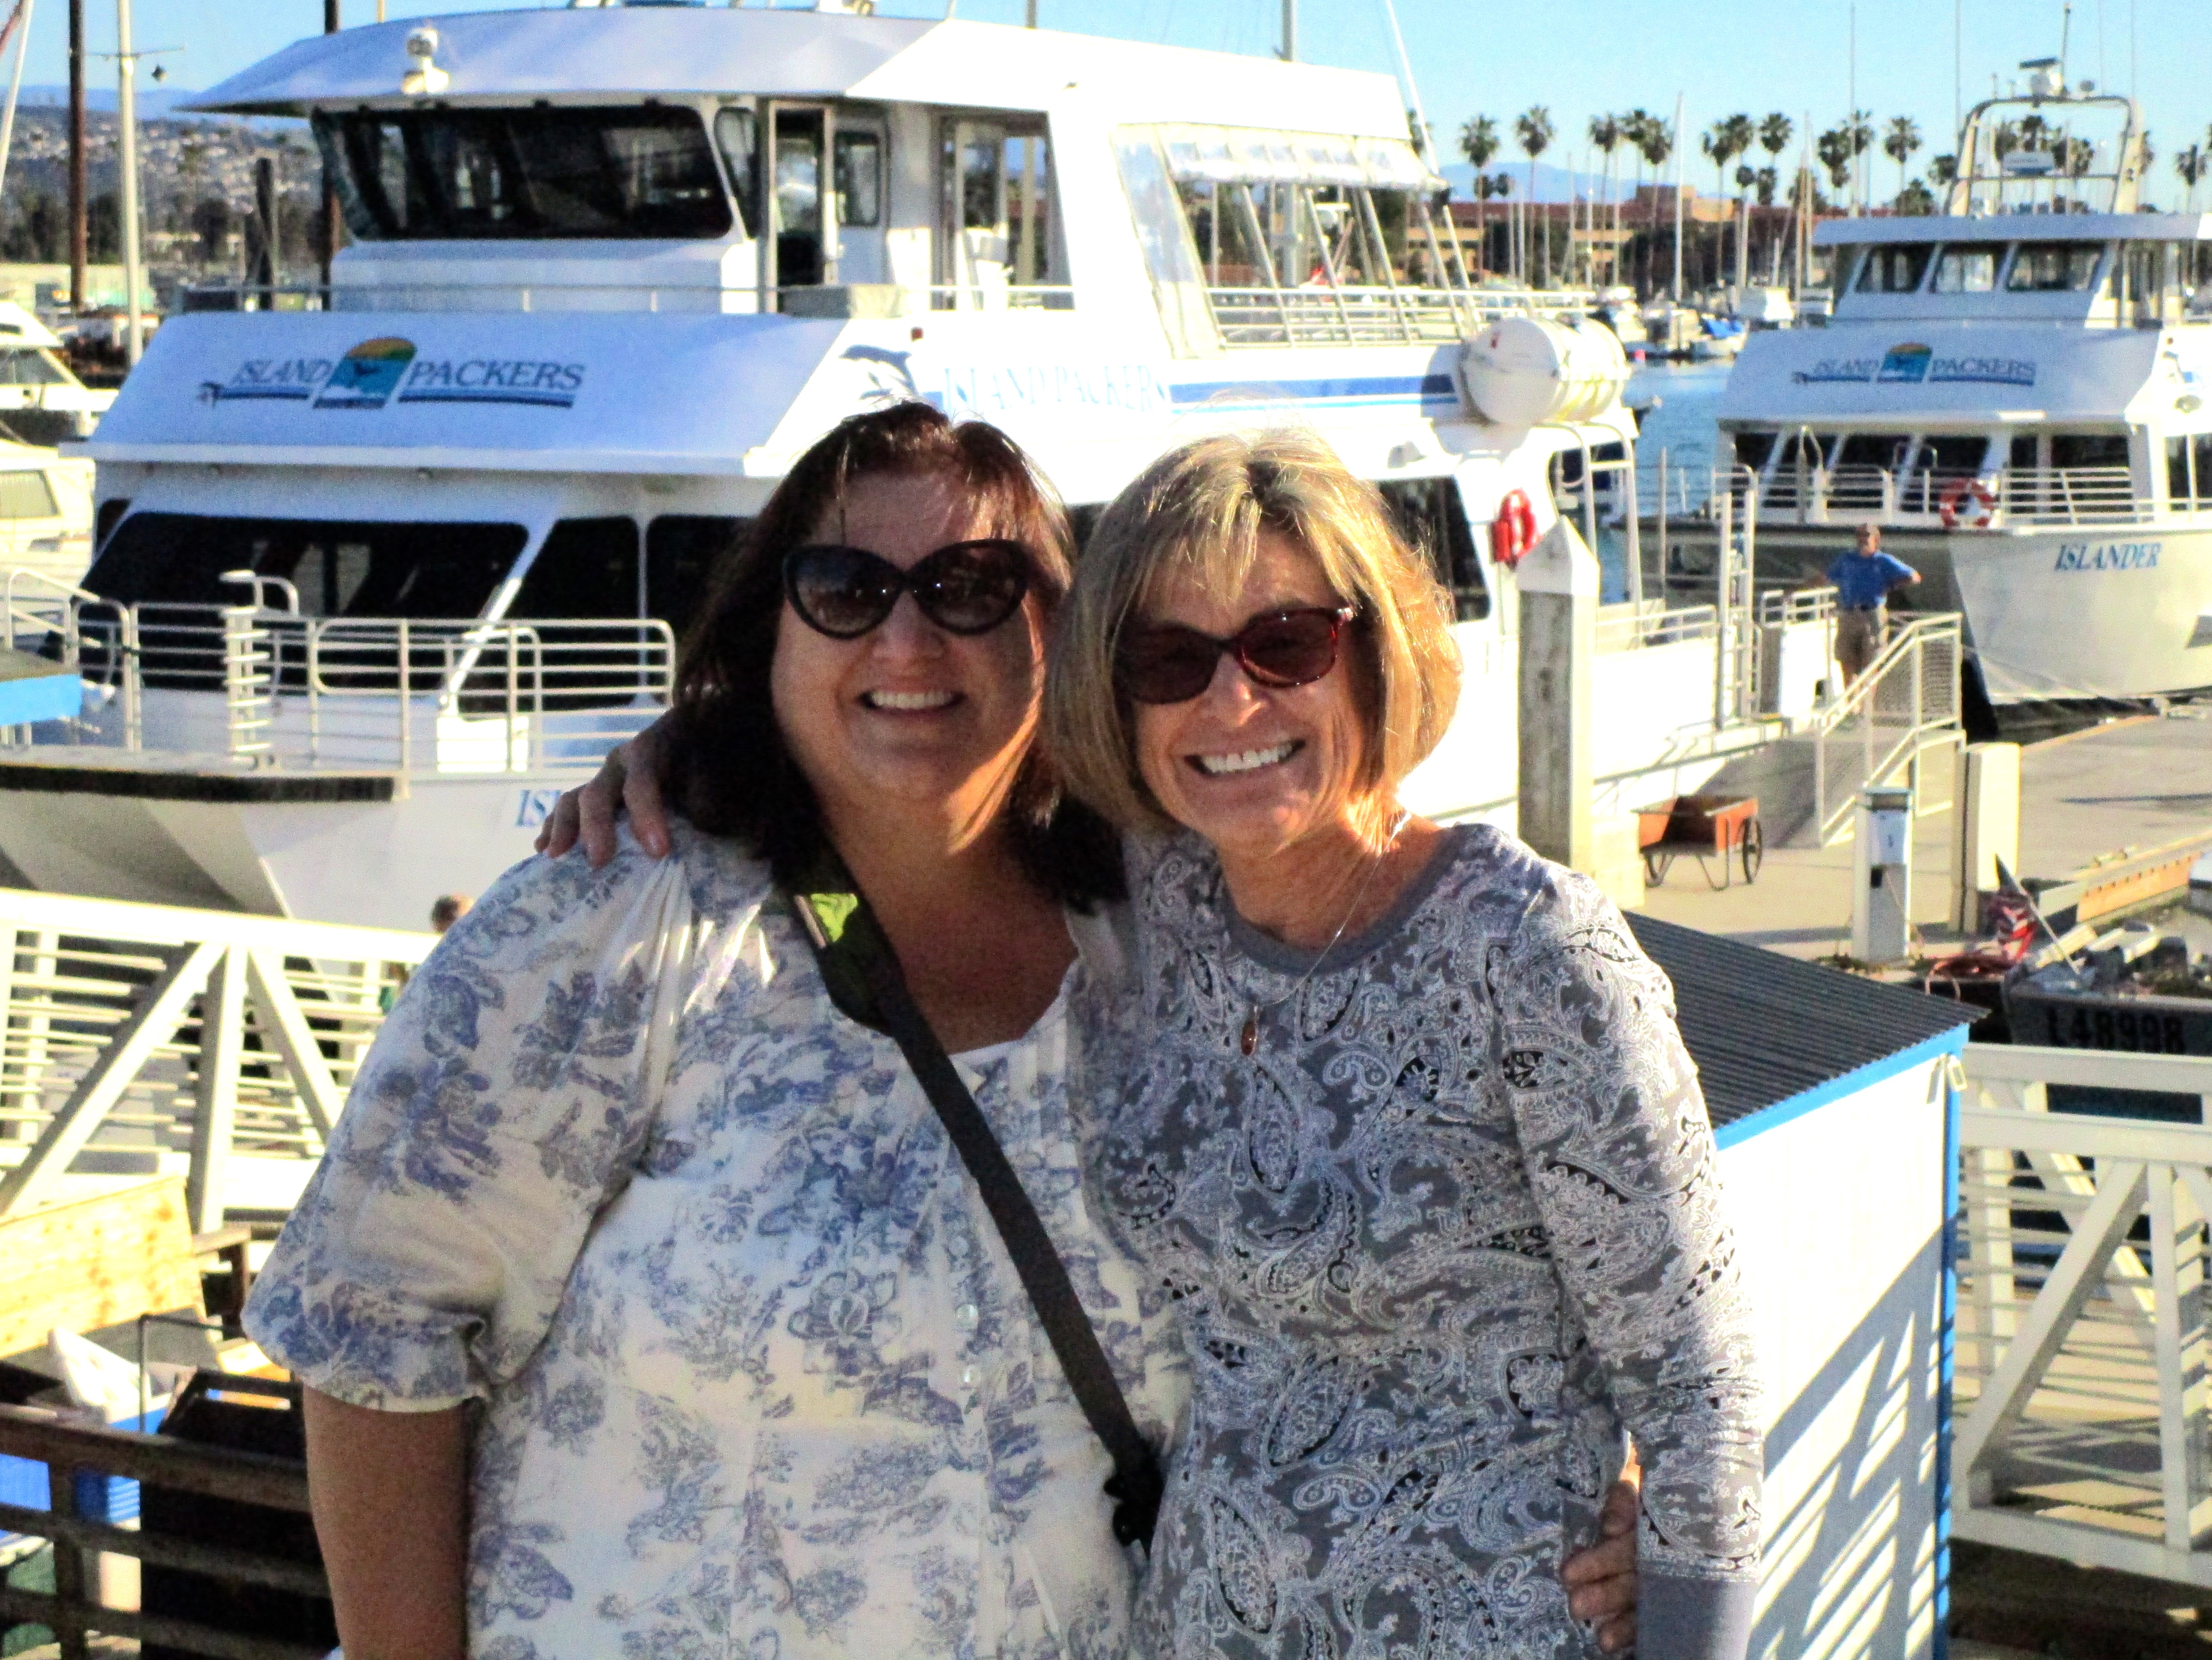 Keeping a promise made to me a year ago, Susan and I are ready to go aboard the Island Packers.